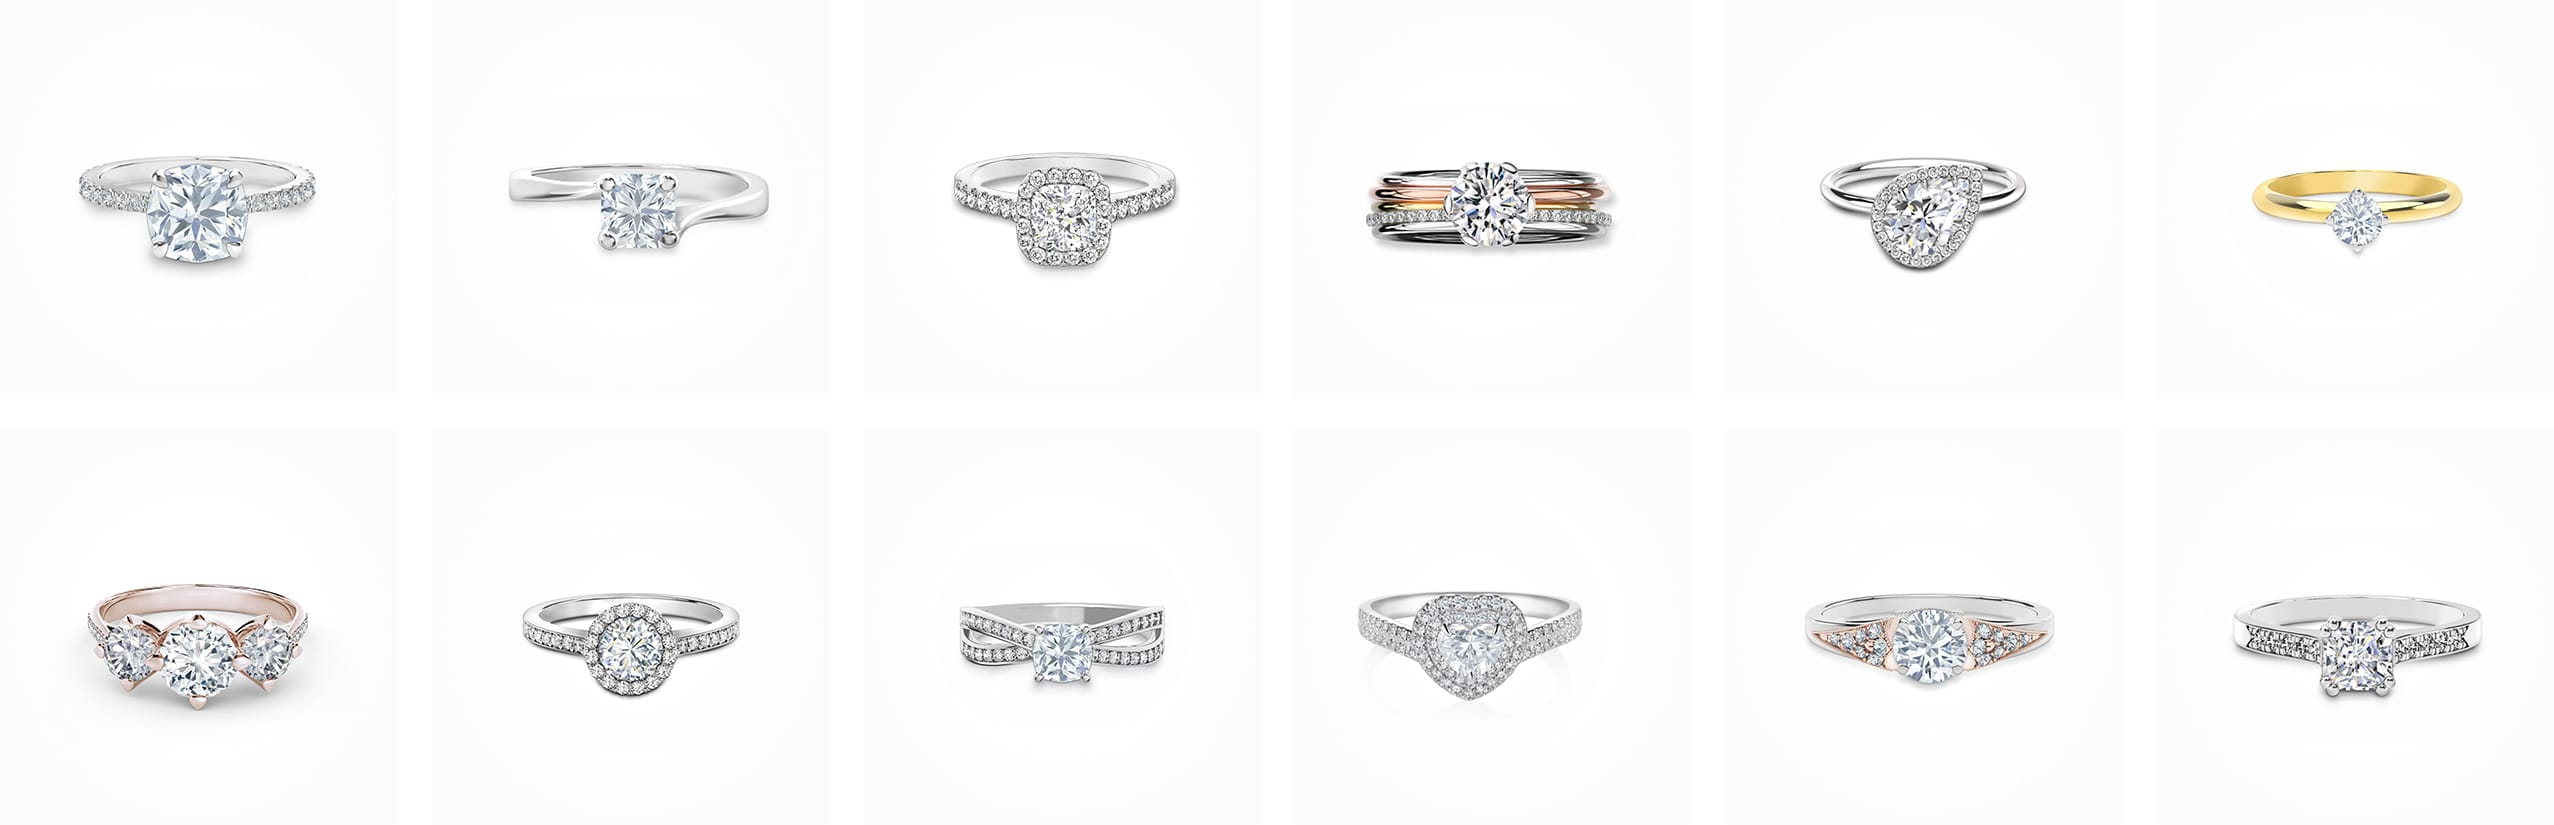 5340074f3 How to buy an engagement ring | Forevermark